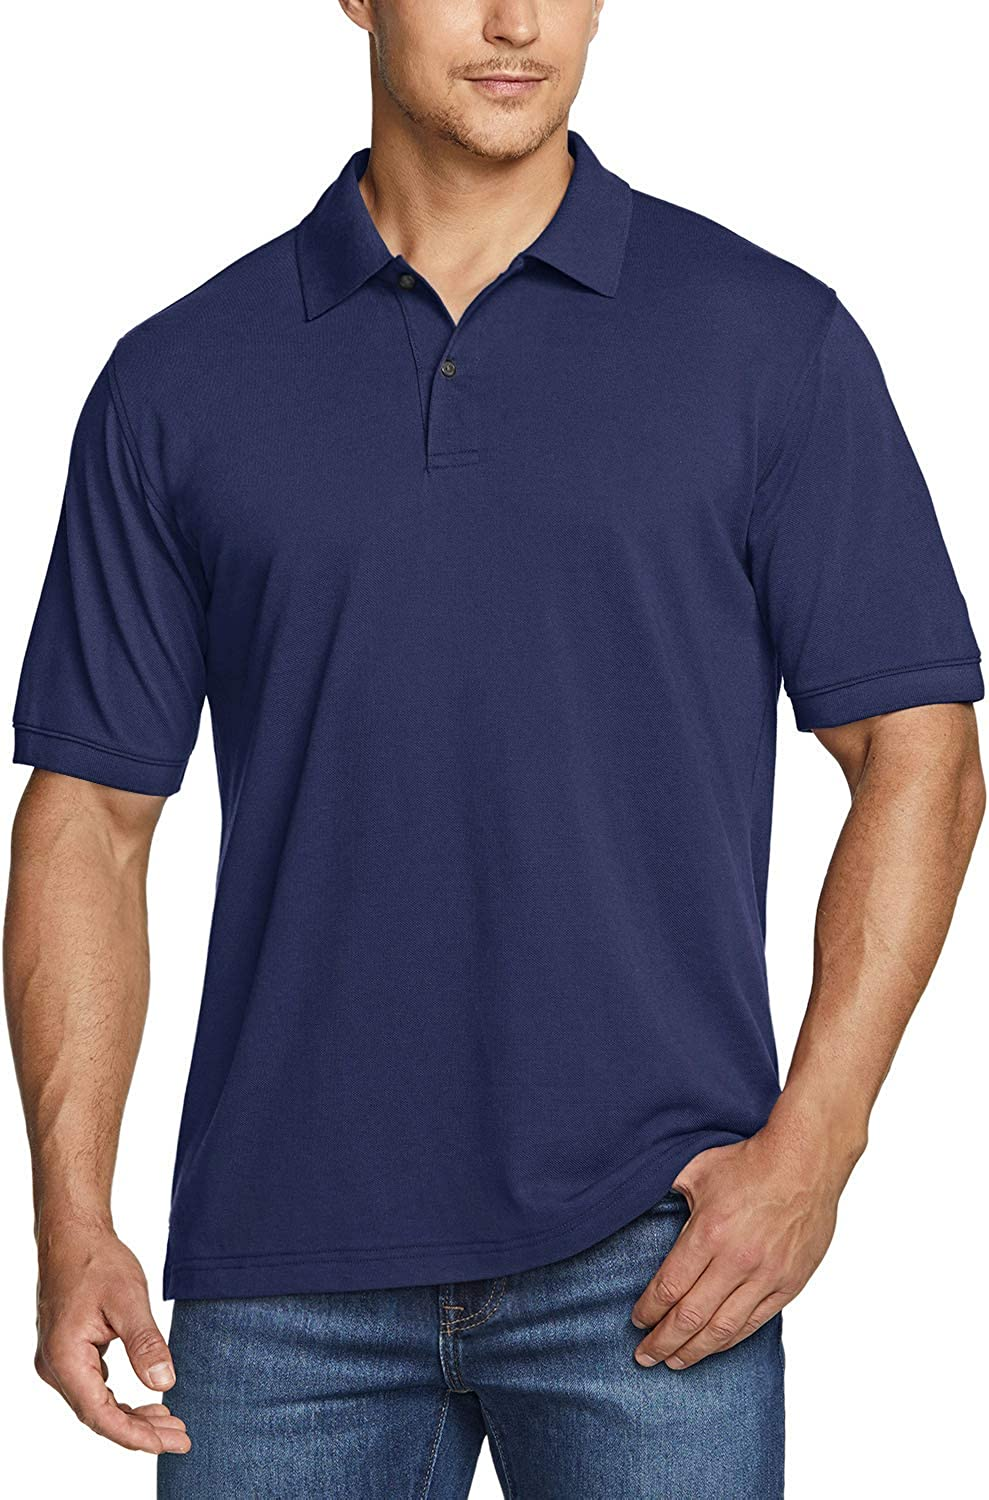 TSLA 1 or 2 Pack Men's Cotton Shirts Sacramento Mall Sho Fit Year-end annual account Pique Polo Classic